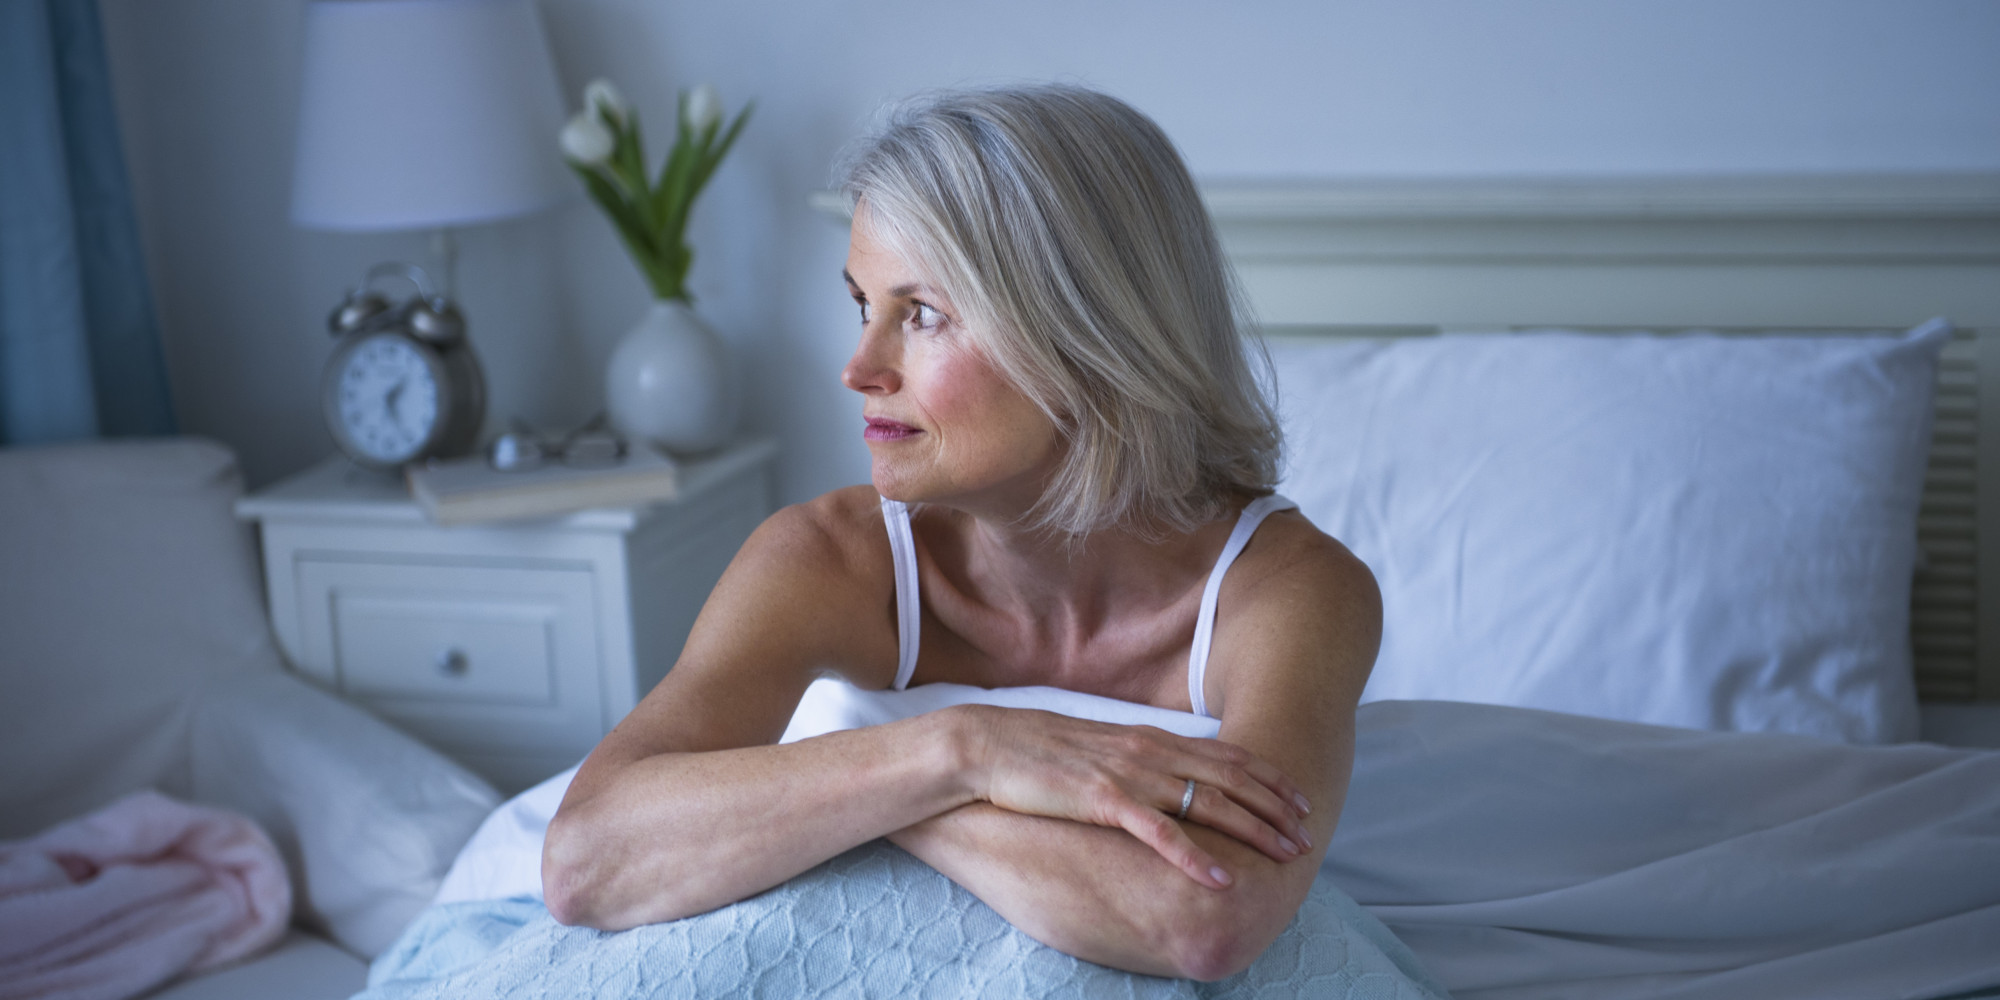 Your Quality of Sleep Declines As You Get Older